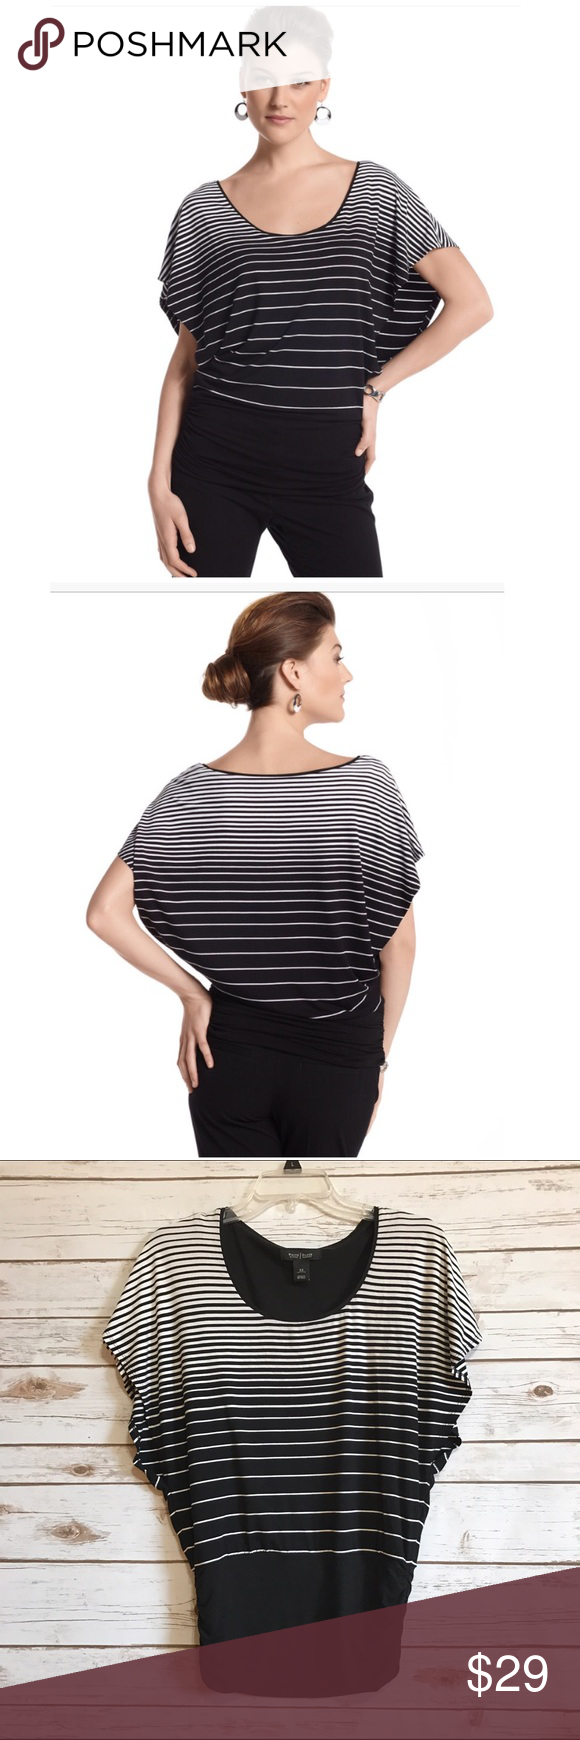 WHBM black ivory striped blouson top Size XS. White House Black Market. Variegated stripes draw the eye upward on this contemporary top with open butter sleeves & a built-in came. Scoop neck. Tapers from the shoulders to the hem. Relaxed blouson fit. Rayon, spandex. EUC (3.1.0)  💟Fast 1-2 day shipping 💟Reasonable offers accepted 💟Purchase 3 or more items & get a special bundle rate!  💟Smoke-free home White House Black Market Tops Blouses